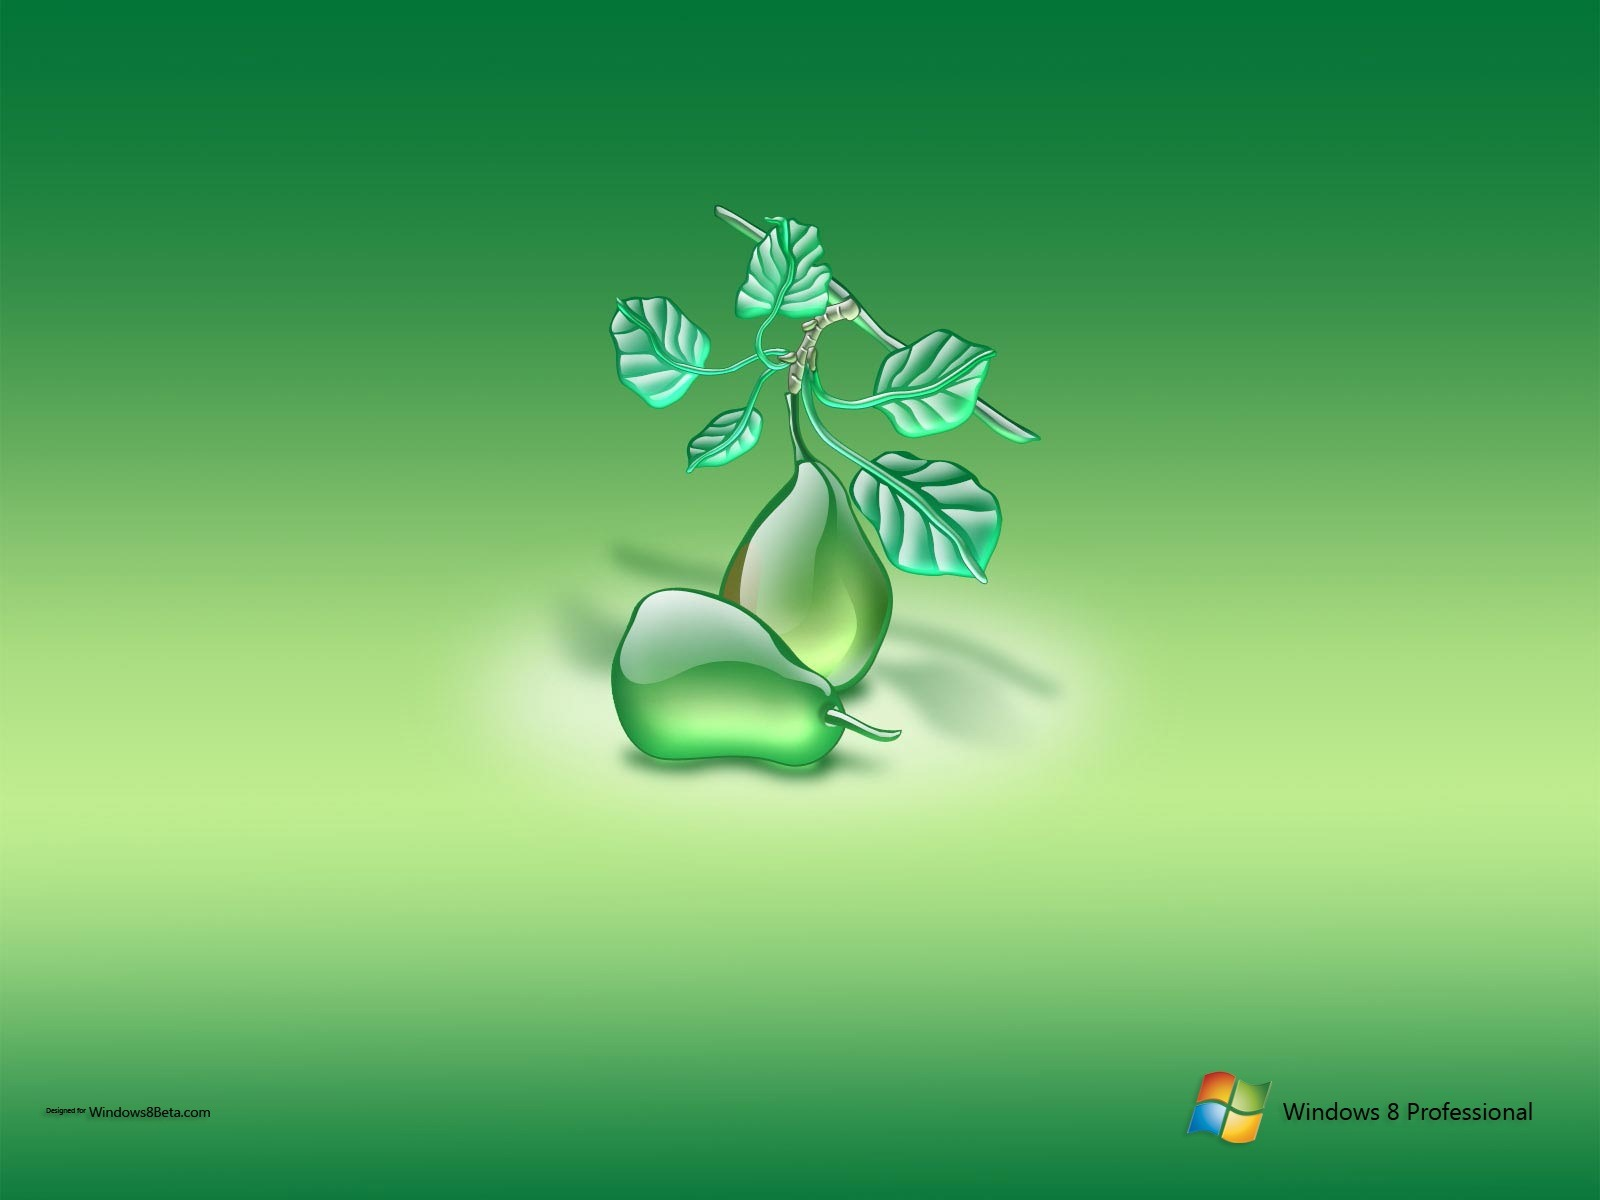 http://3.bp.blogspot.com/-9eg0_WYoMoM/UYI71YXKglI/AAAAAAAAAec/PoH6juceZ2k/s1600/Windows_8_wallpaper_2.jpg